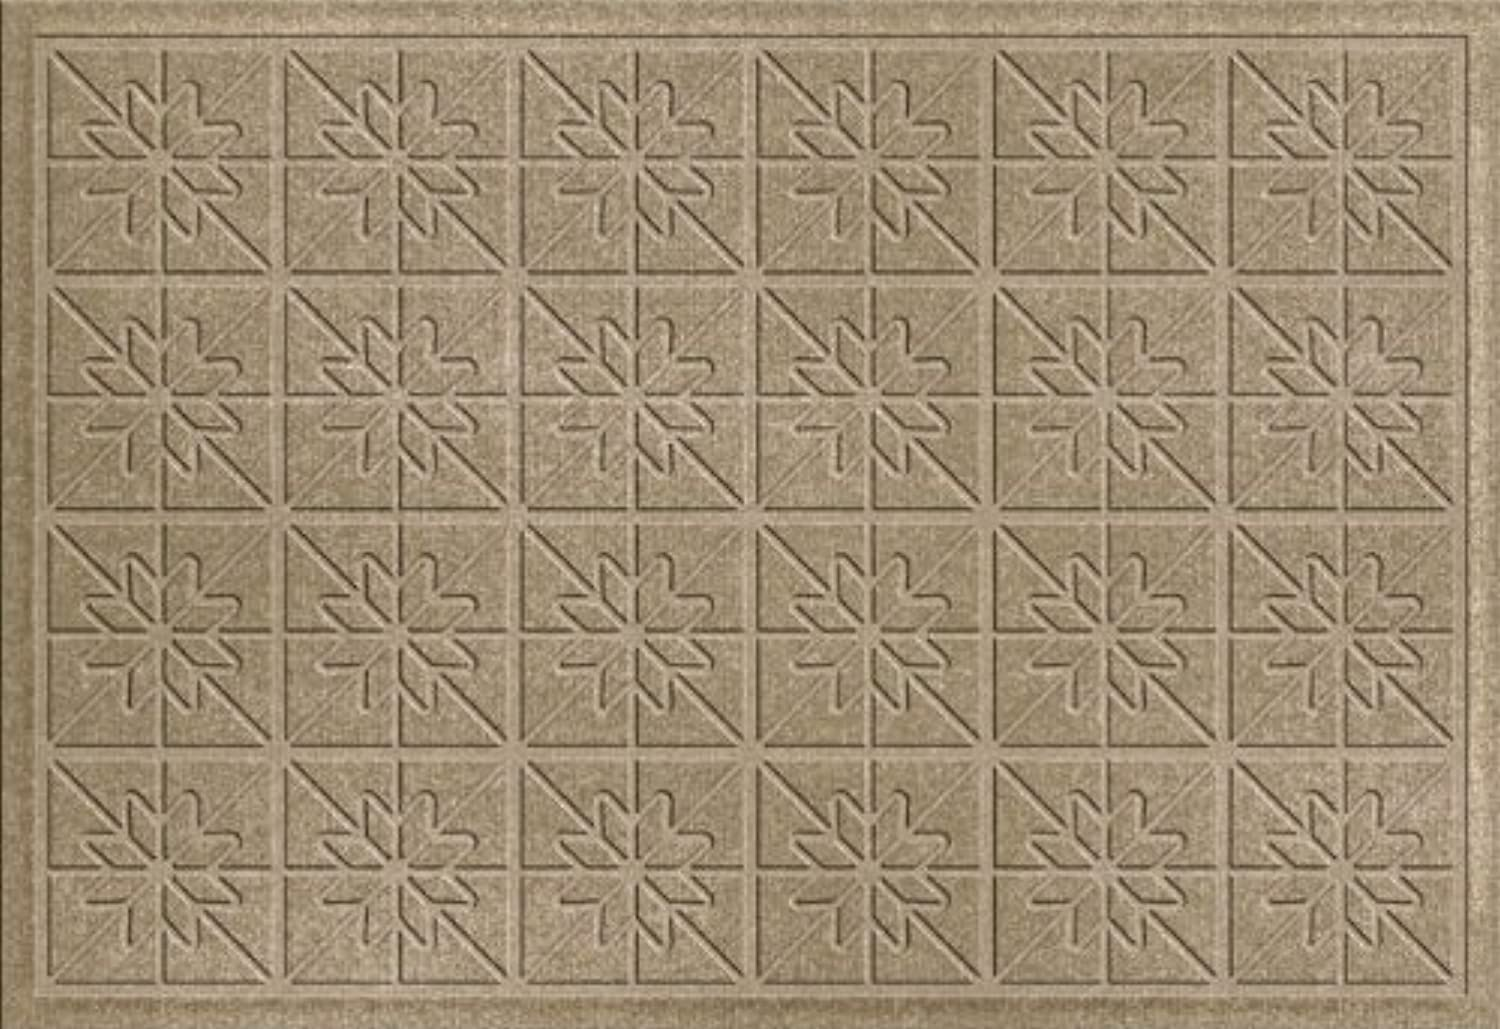 Bungalow Flooring 843500023 Water Guard Star Quilt Mat in Camel - 2 ft. x 3 ft.